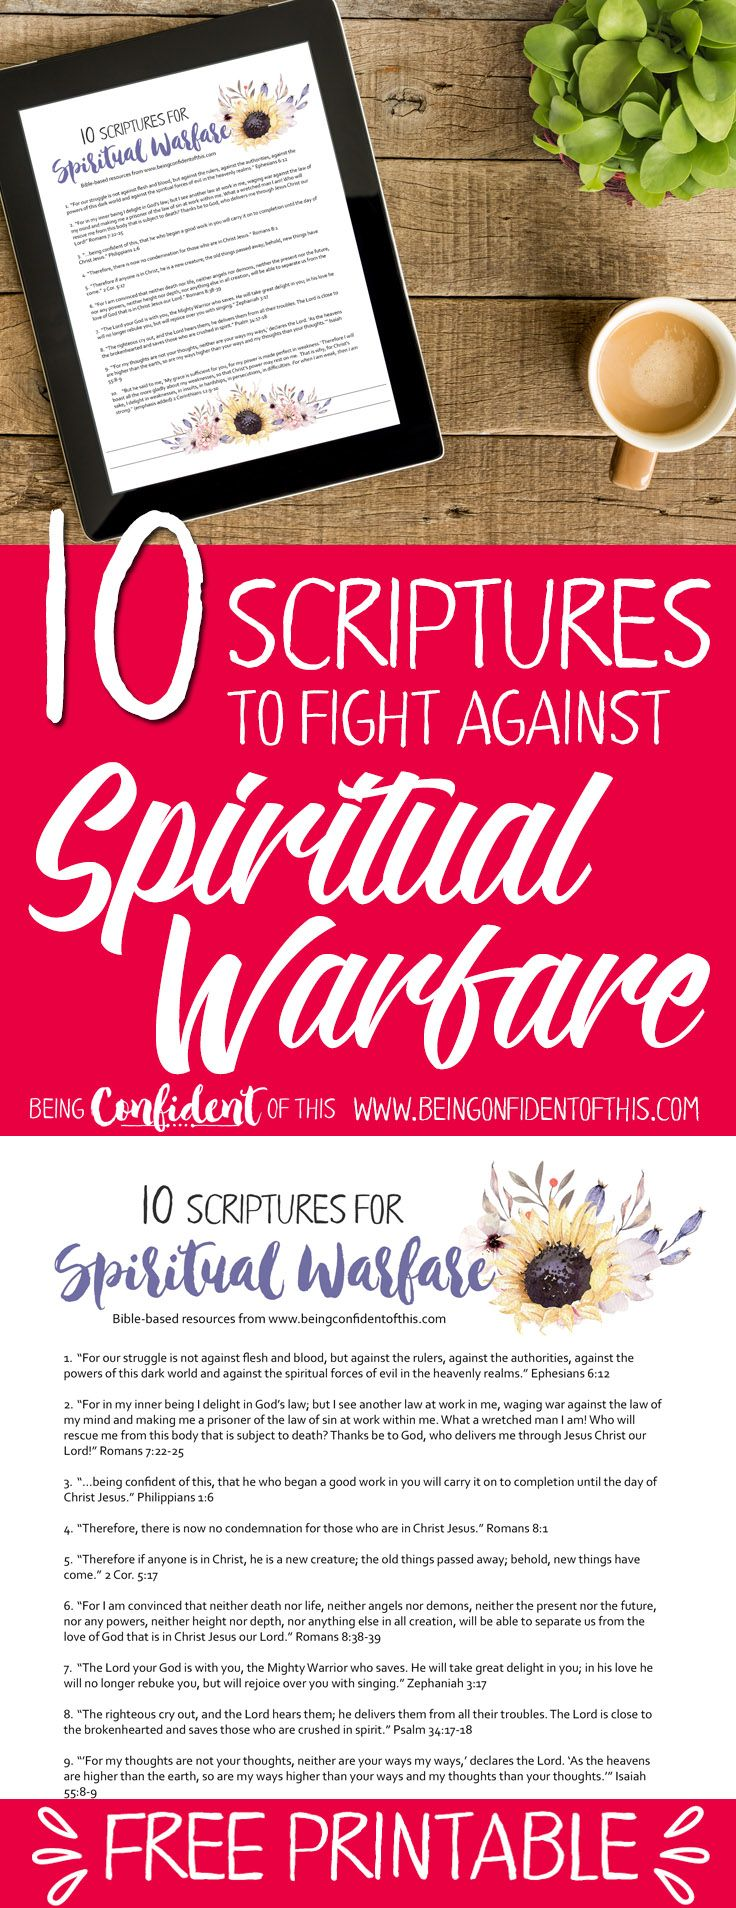 Use these Bible verses to fight back when you experience spiritual warfare. Hang this free printable in a highly visible area as a constant reminder to use your Spiritual Armor! Bible verses|spiritual warfare|fighter verses|encouraging scripture|faith-based resources for women|christian women|free printables| Bible study |devotionals | help for discouraged women |work-in-progress faith #Bibleverse #freeprintable #spiritualwarfare